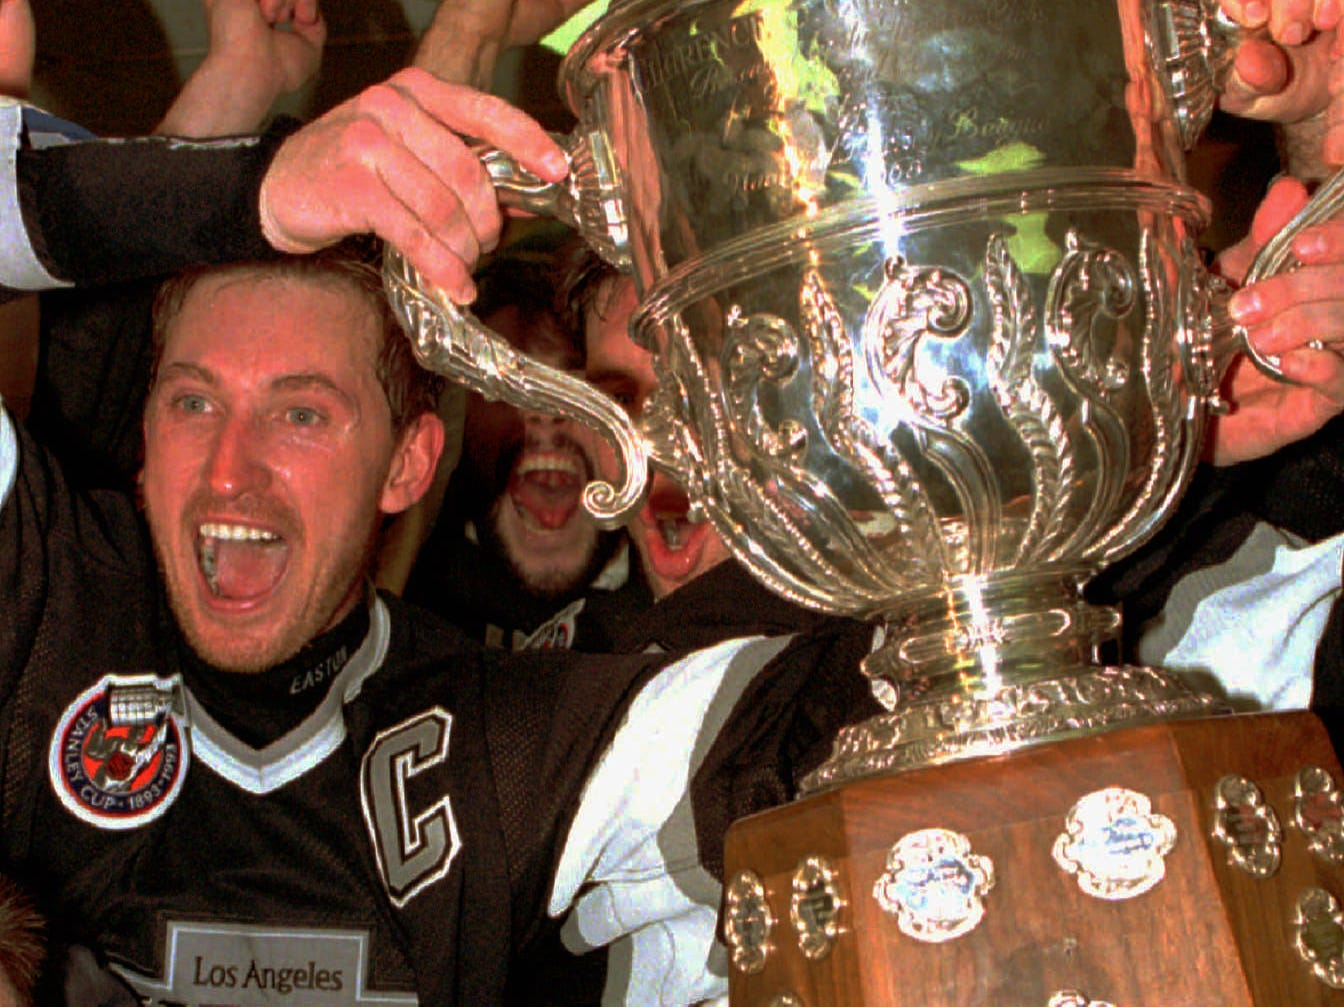 Gretzky made the Kings a must-have ticket, particularly during their run to the Stanley Cup Final in 1993. Gretzky holds up the Clarence Campbell Trophy, though the Montreal Canadiens won the Stanley Cup that spring.